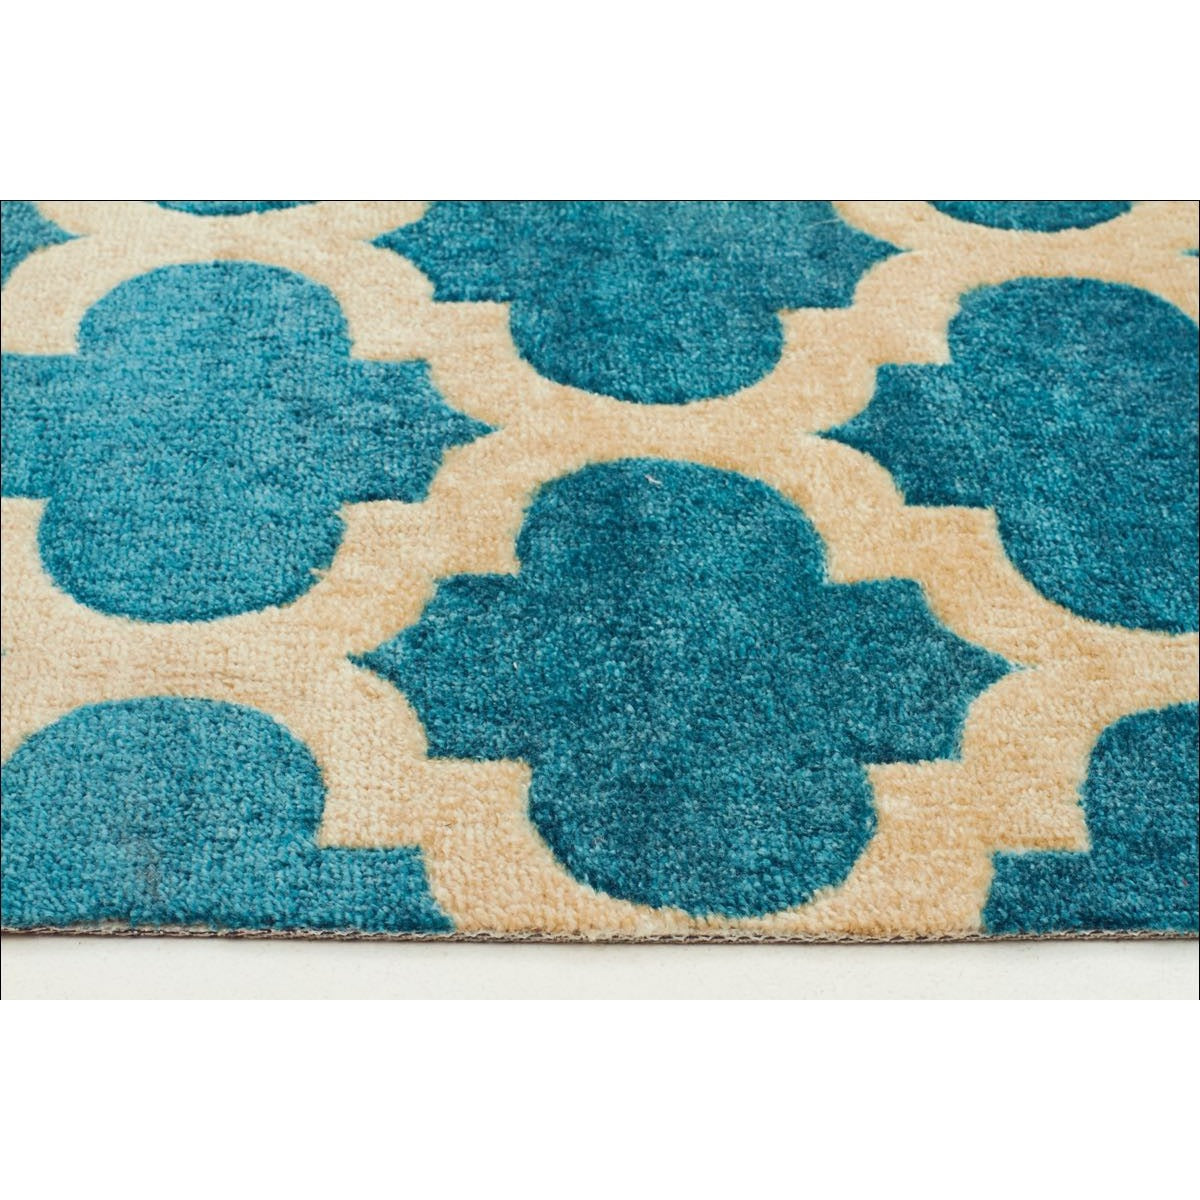 Calais Contemporary Blue Trellis Patterned Rug Rugs Of